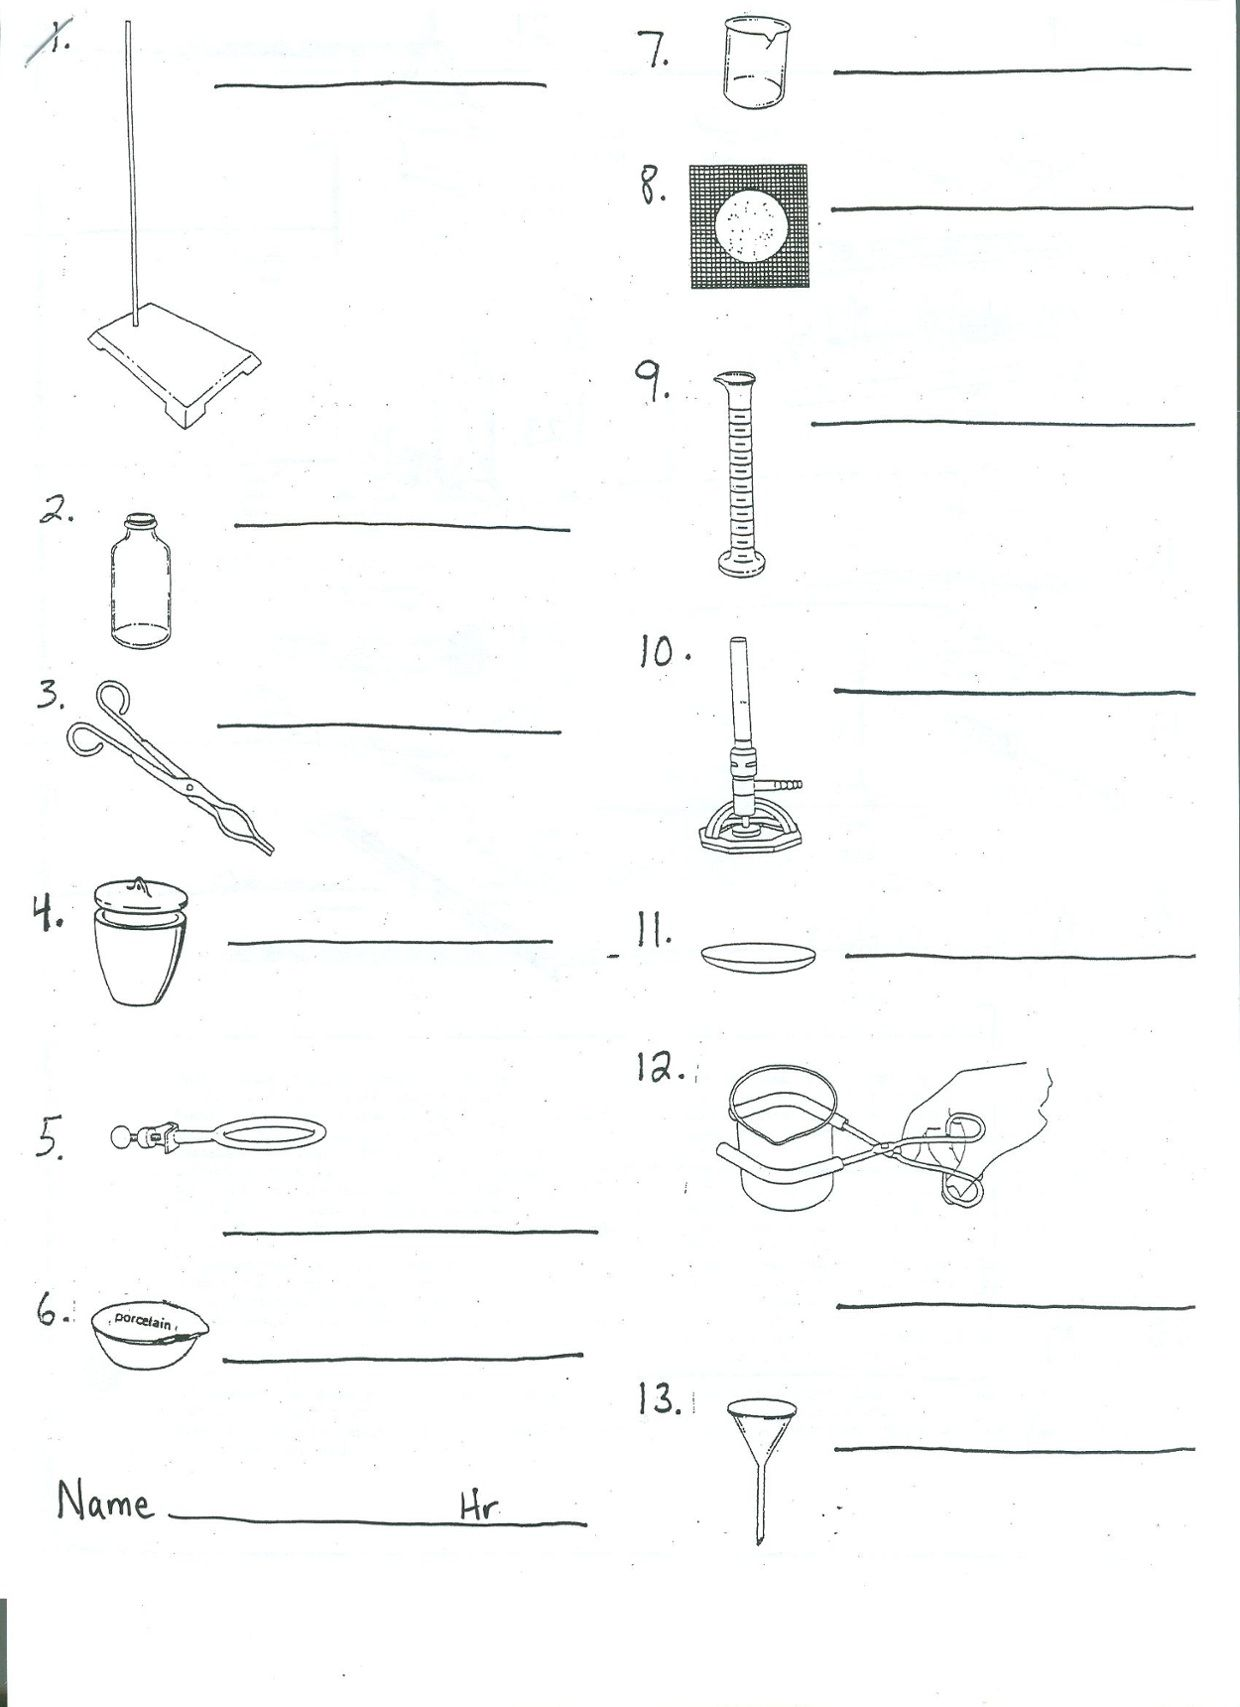 Worksheets Lab Equipment Worksheet image result for recognizing lab equipment worksheet class y worksheet